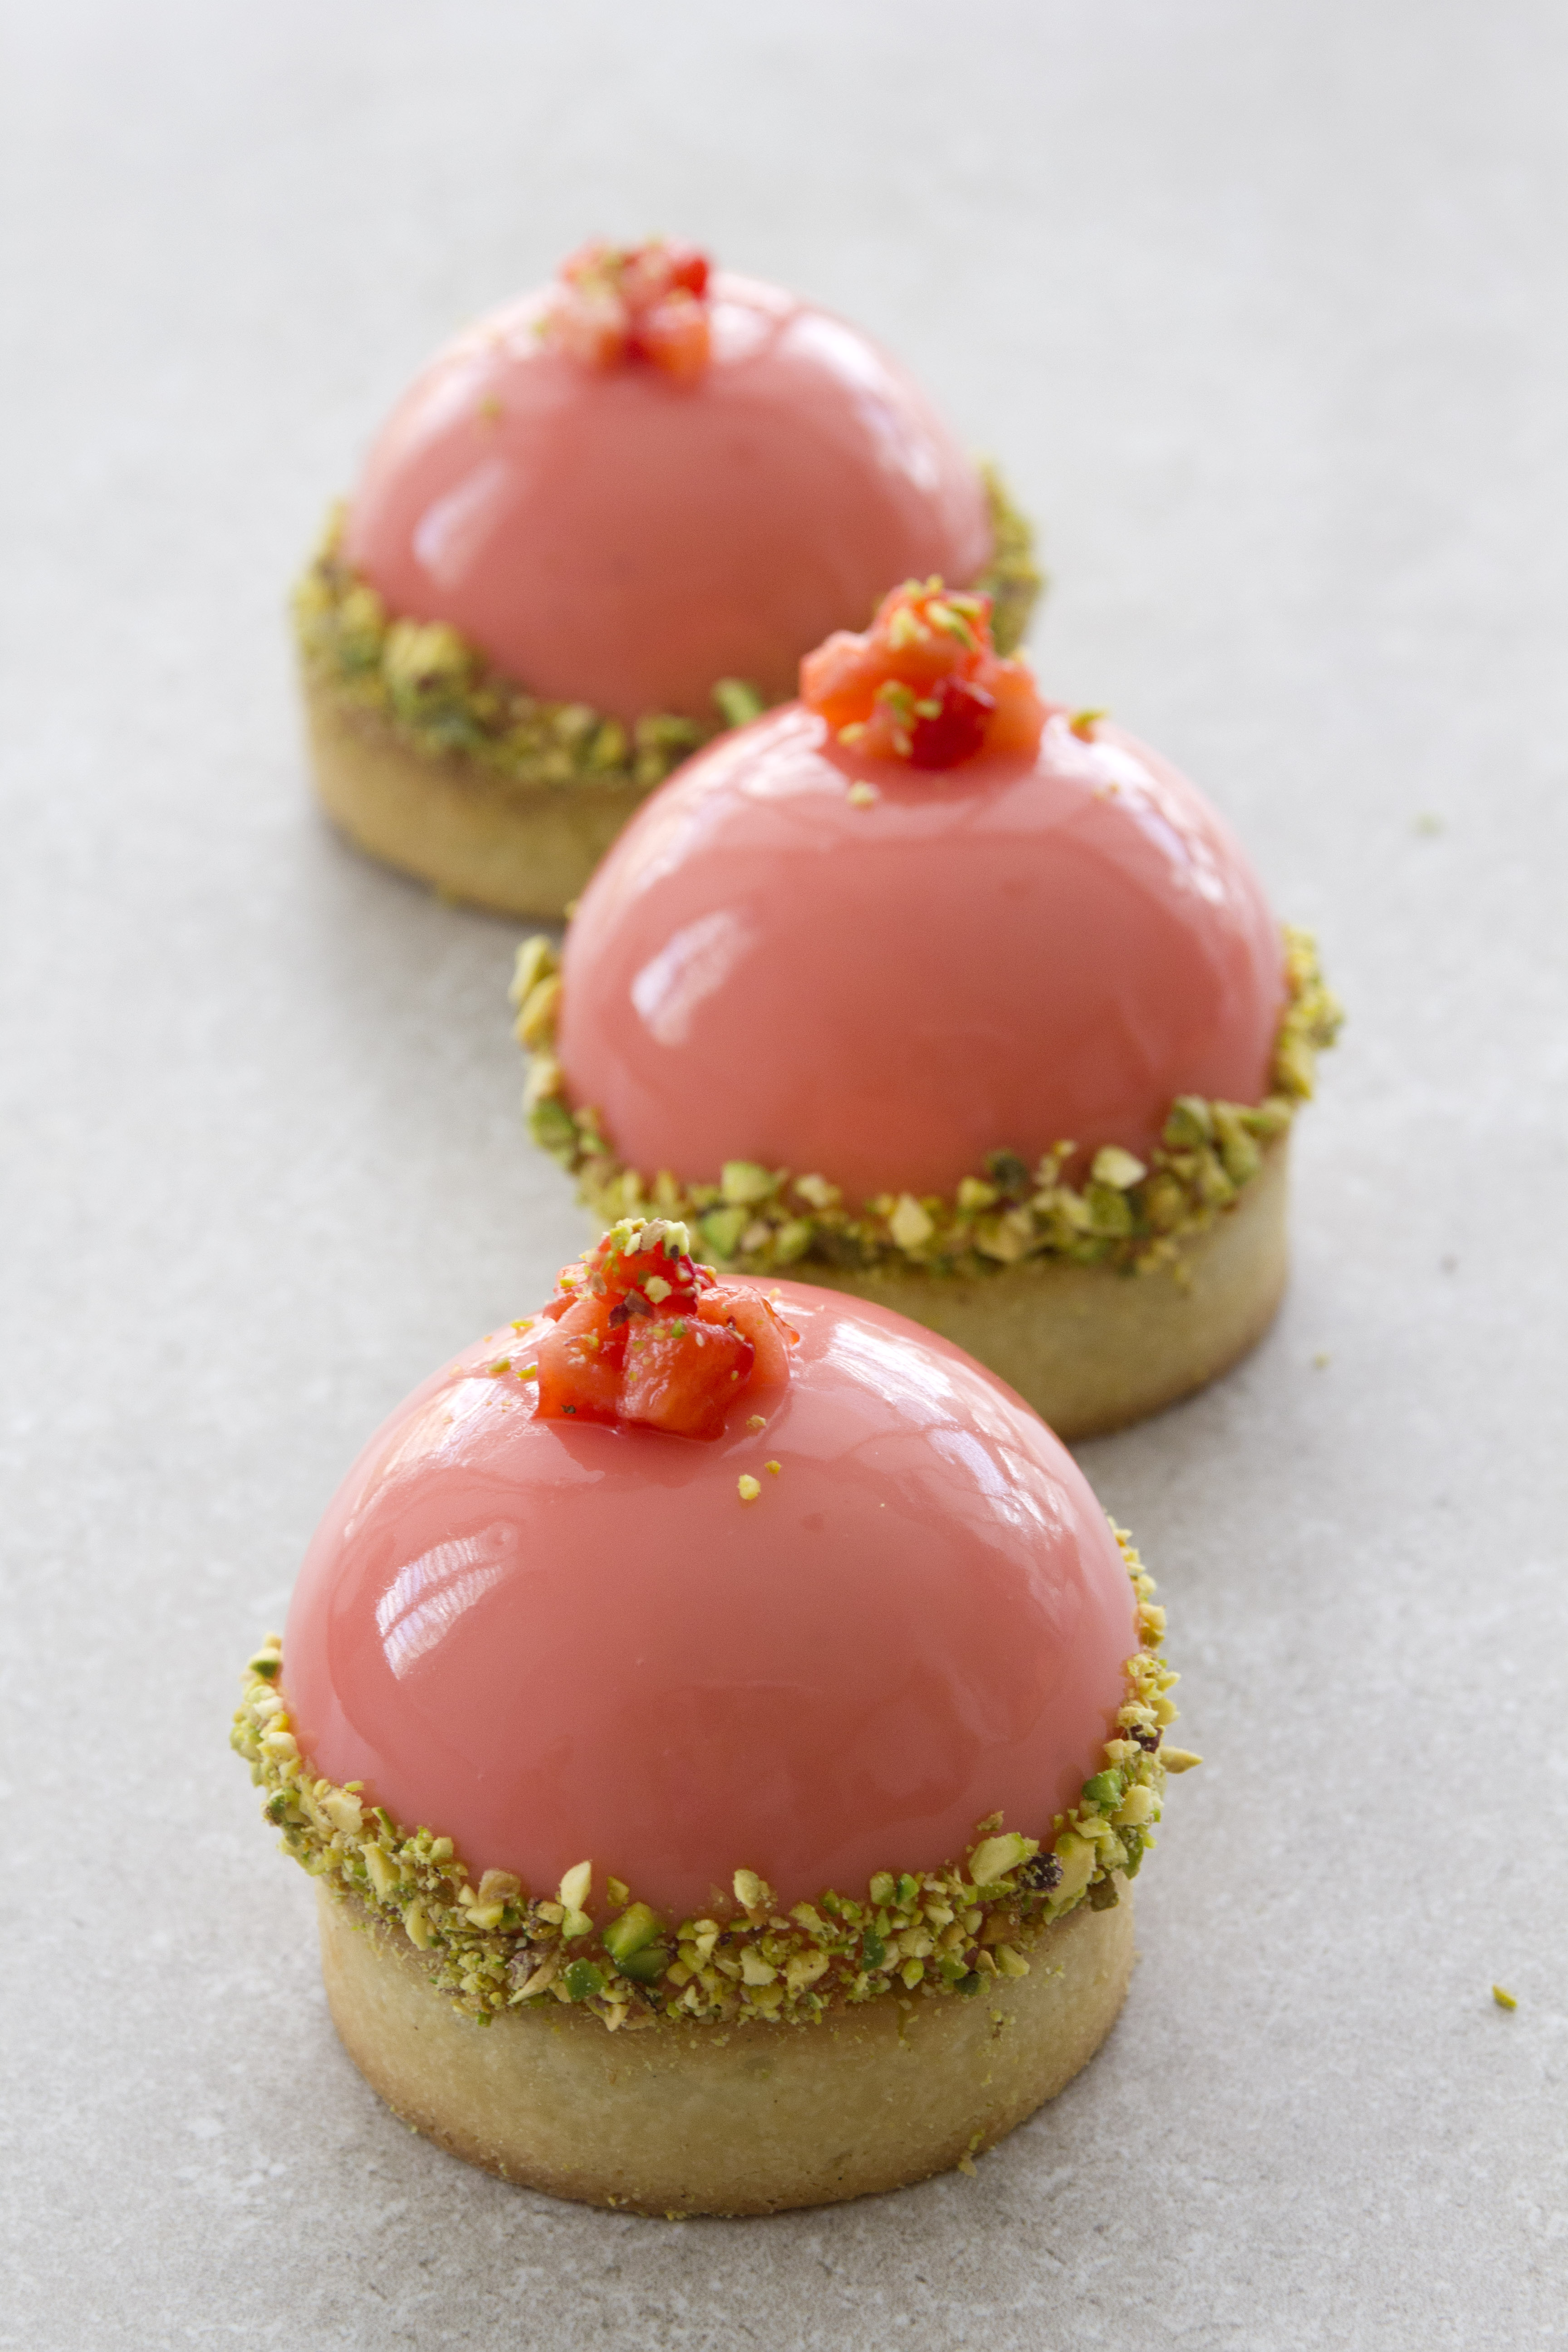 Pistachio and Strawberry Tartelettes